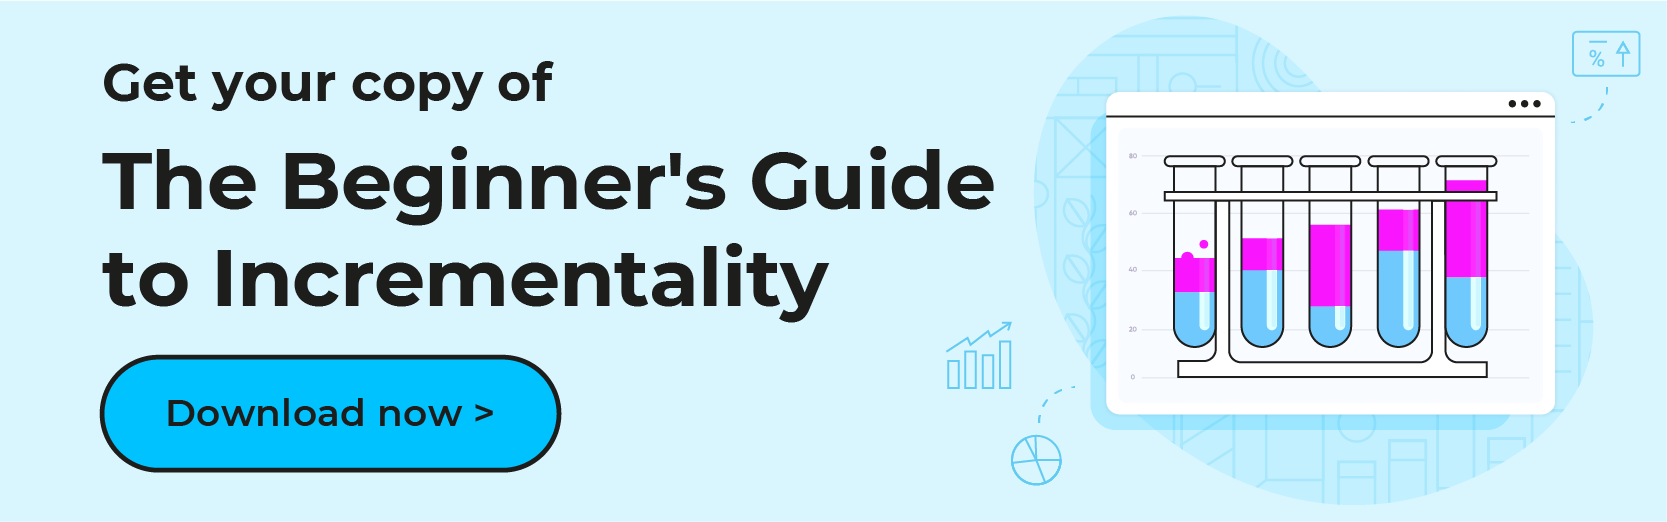 Incrementality guide